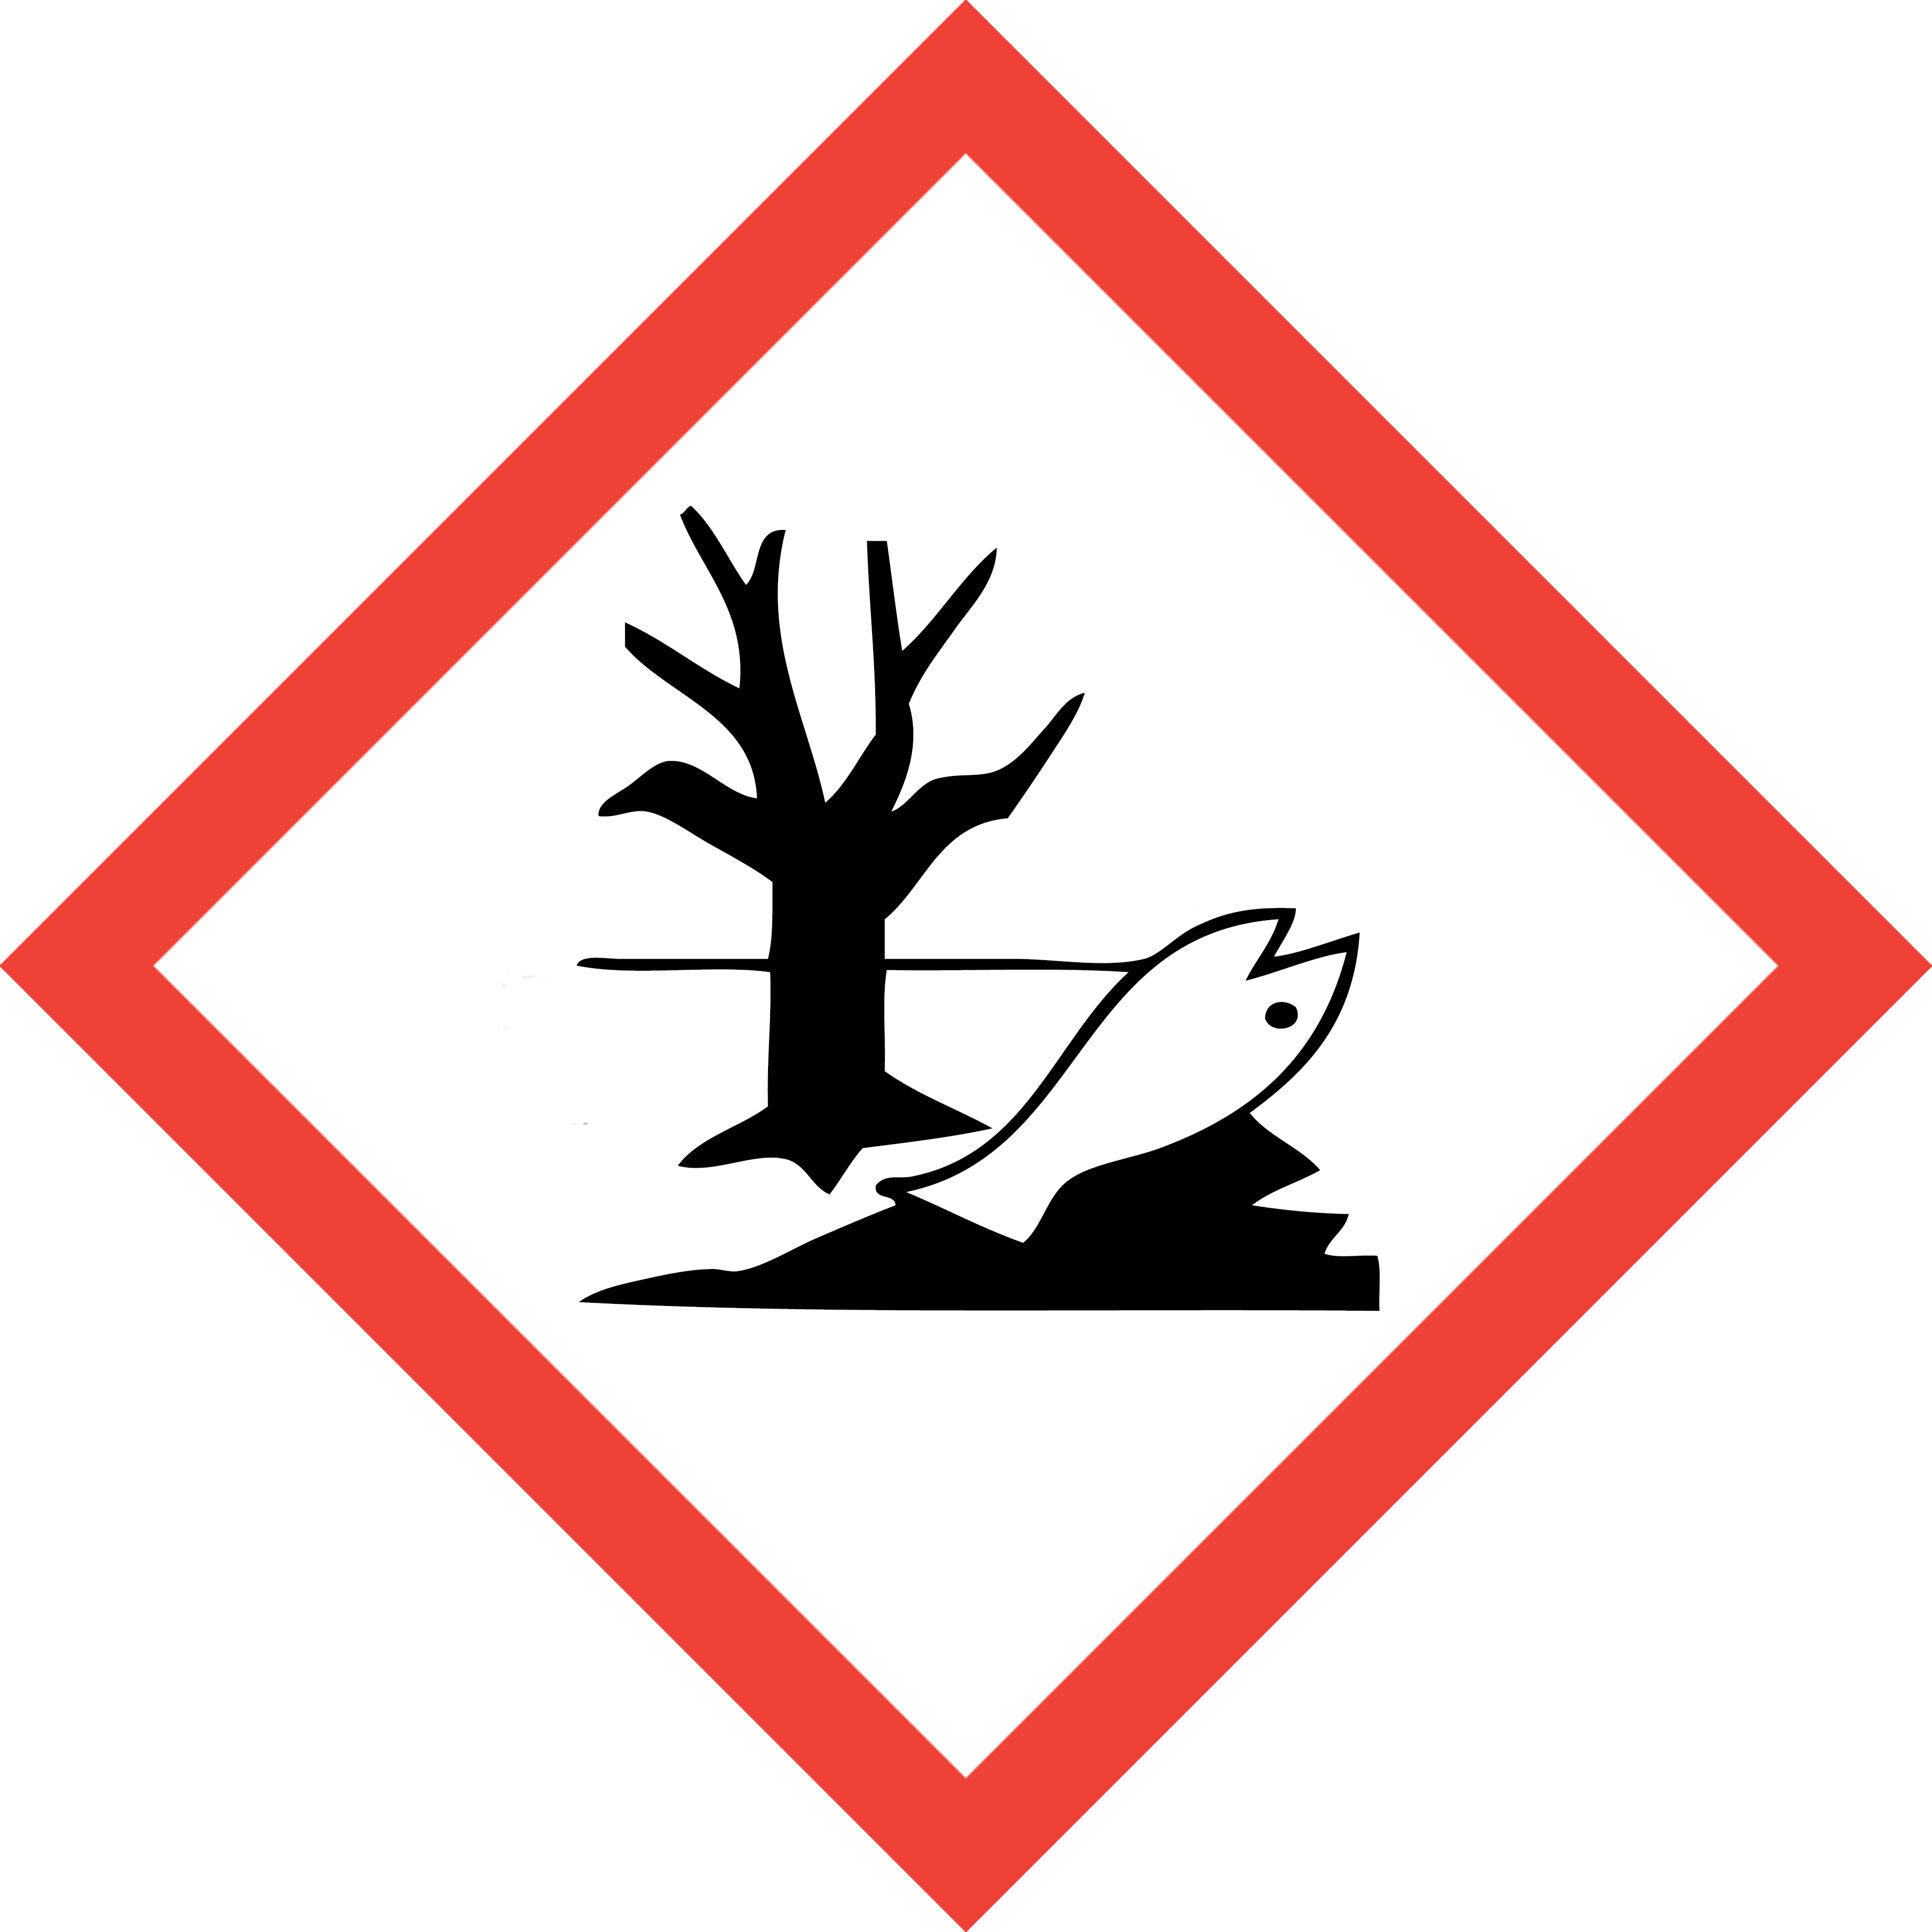 Danger clipart pictogram Communication Environment Health and Occupational